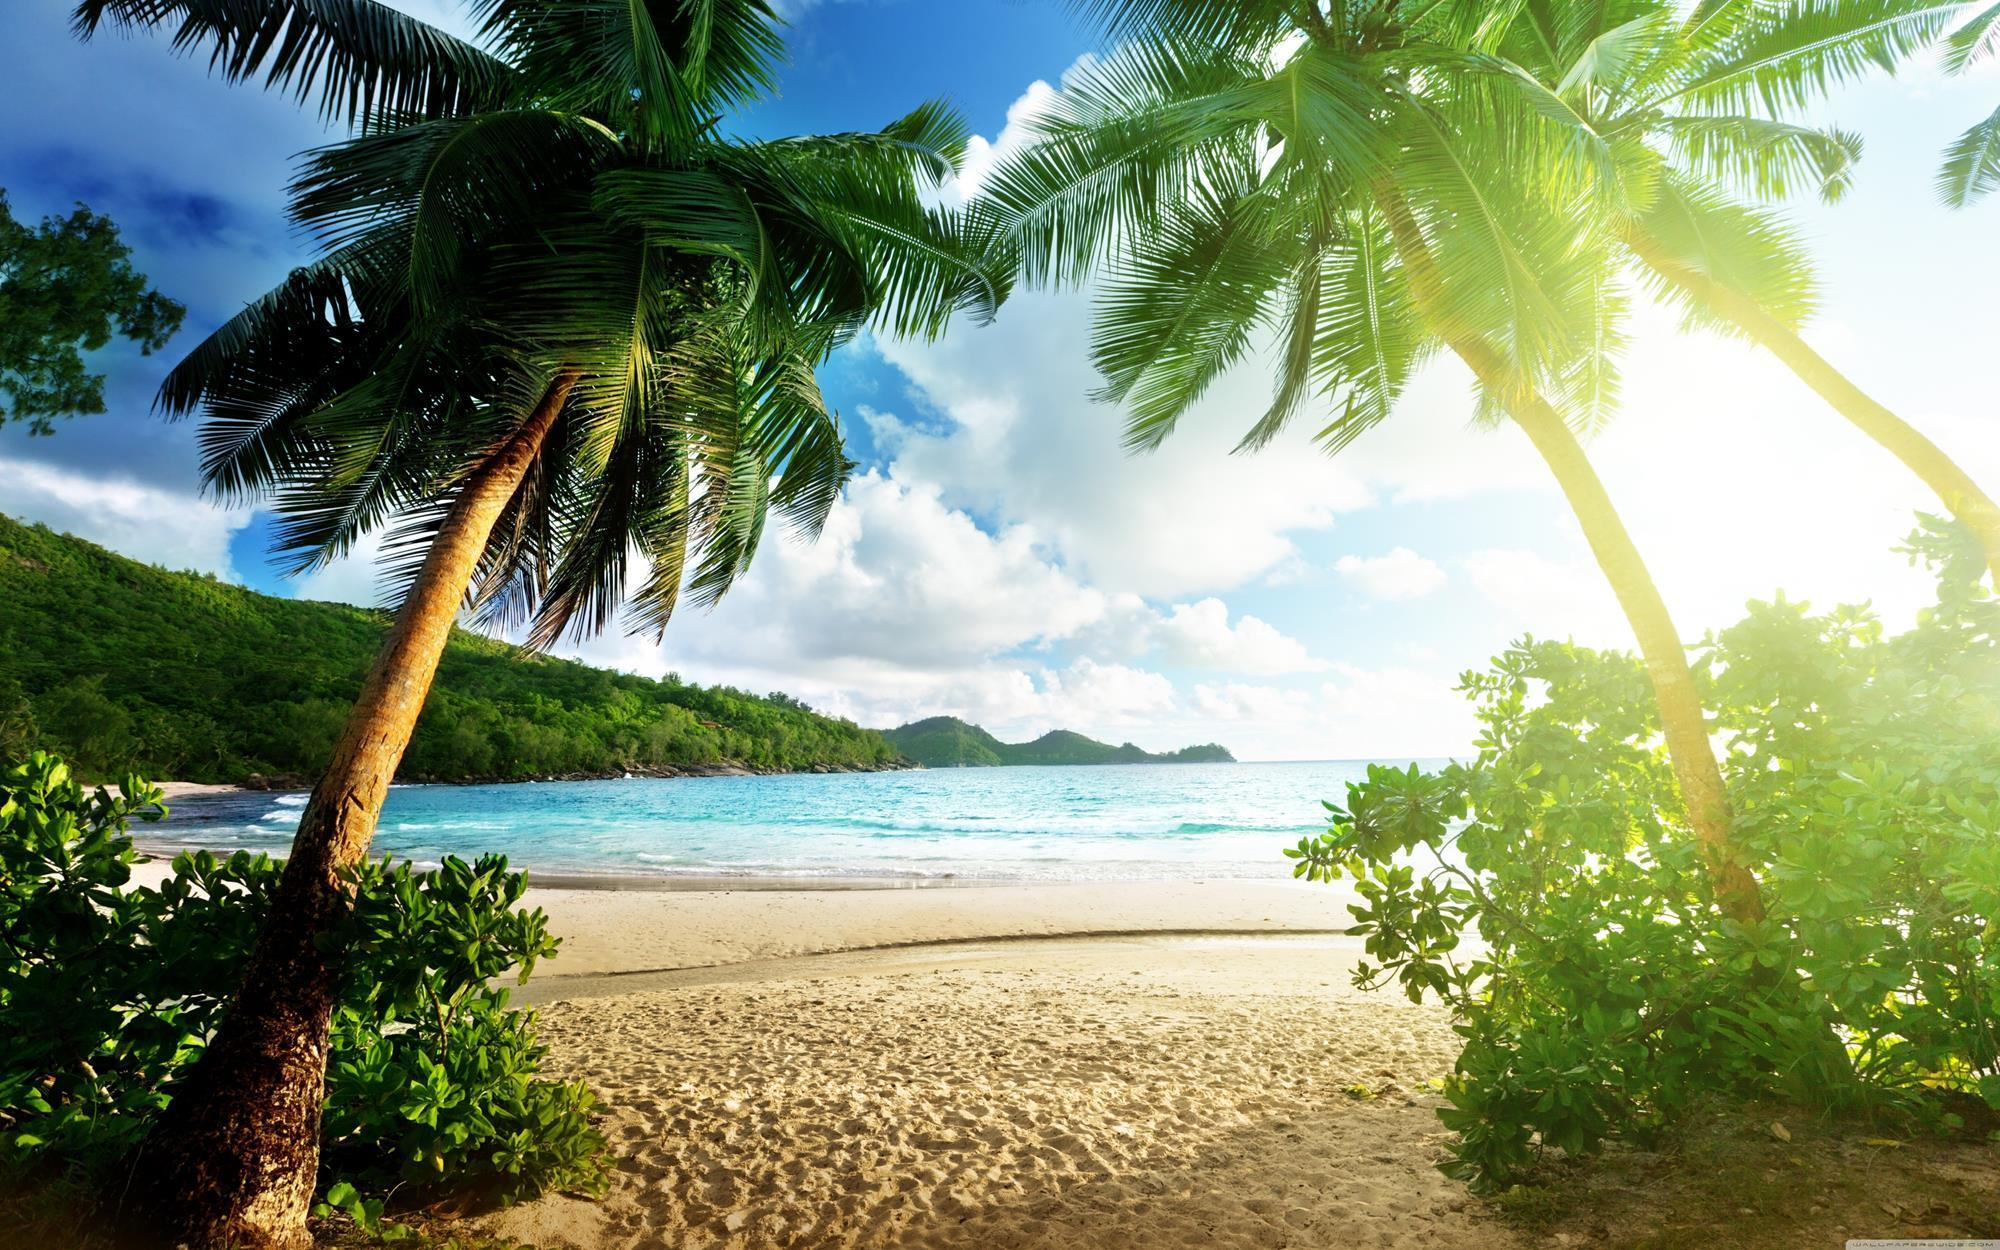 Island Wallpaper For Android Apk Download